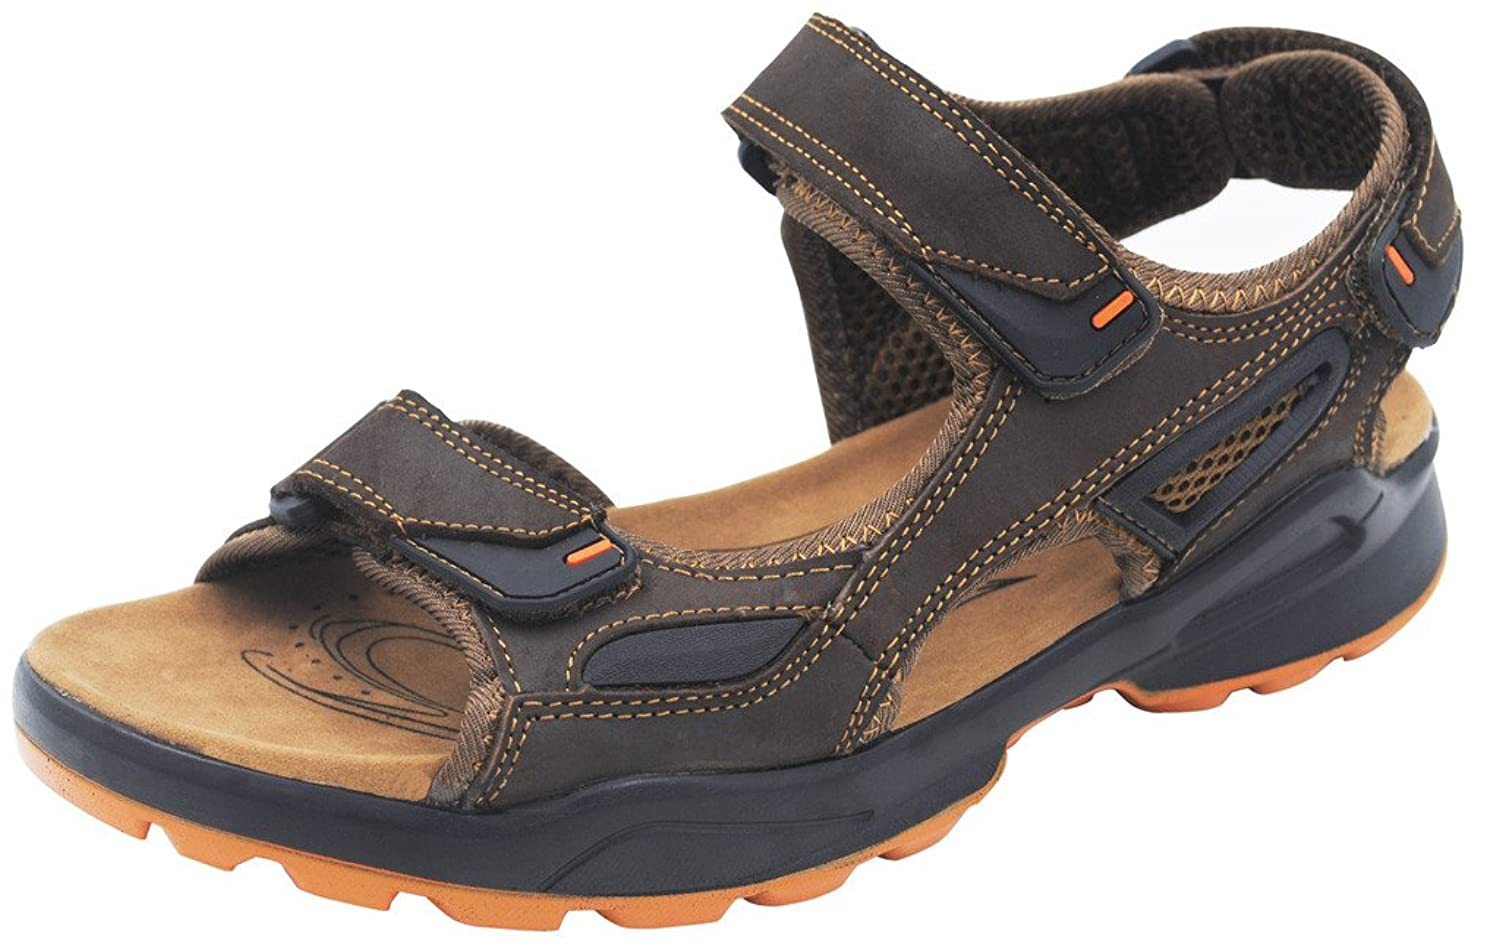 4How Men's Leather Sandals Outdoor Shoes